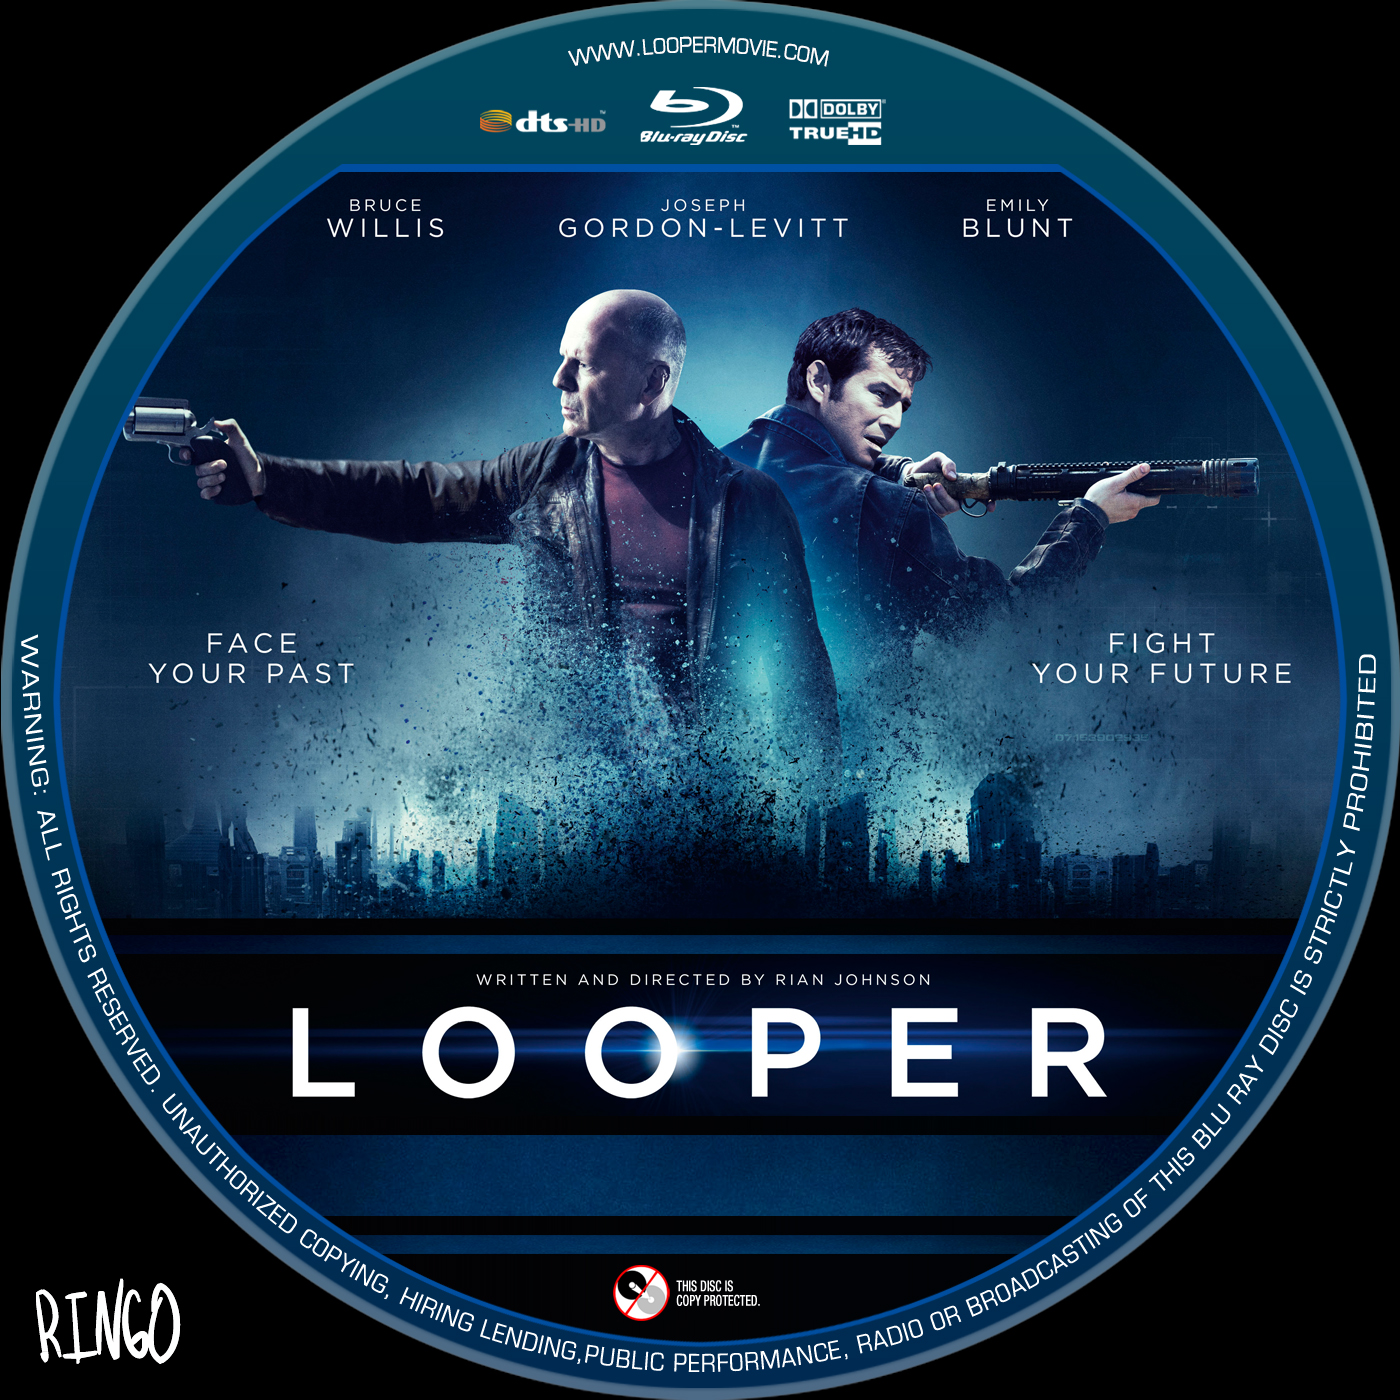 Looper Dvd Front Cover Covers Hut